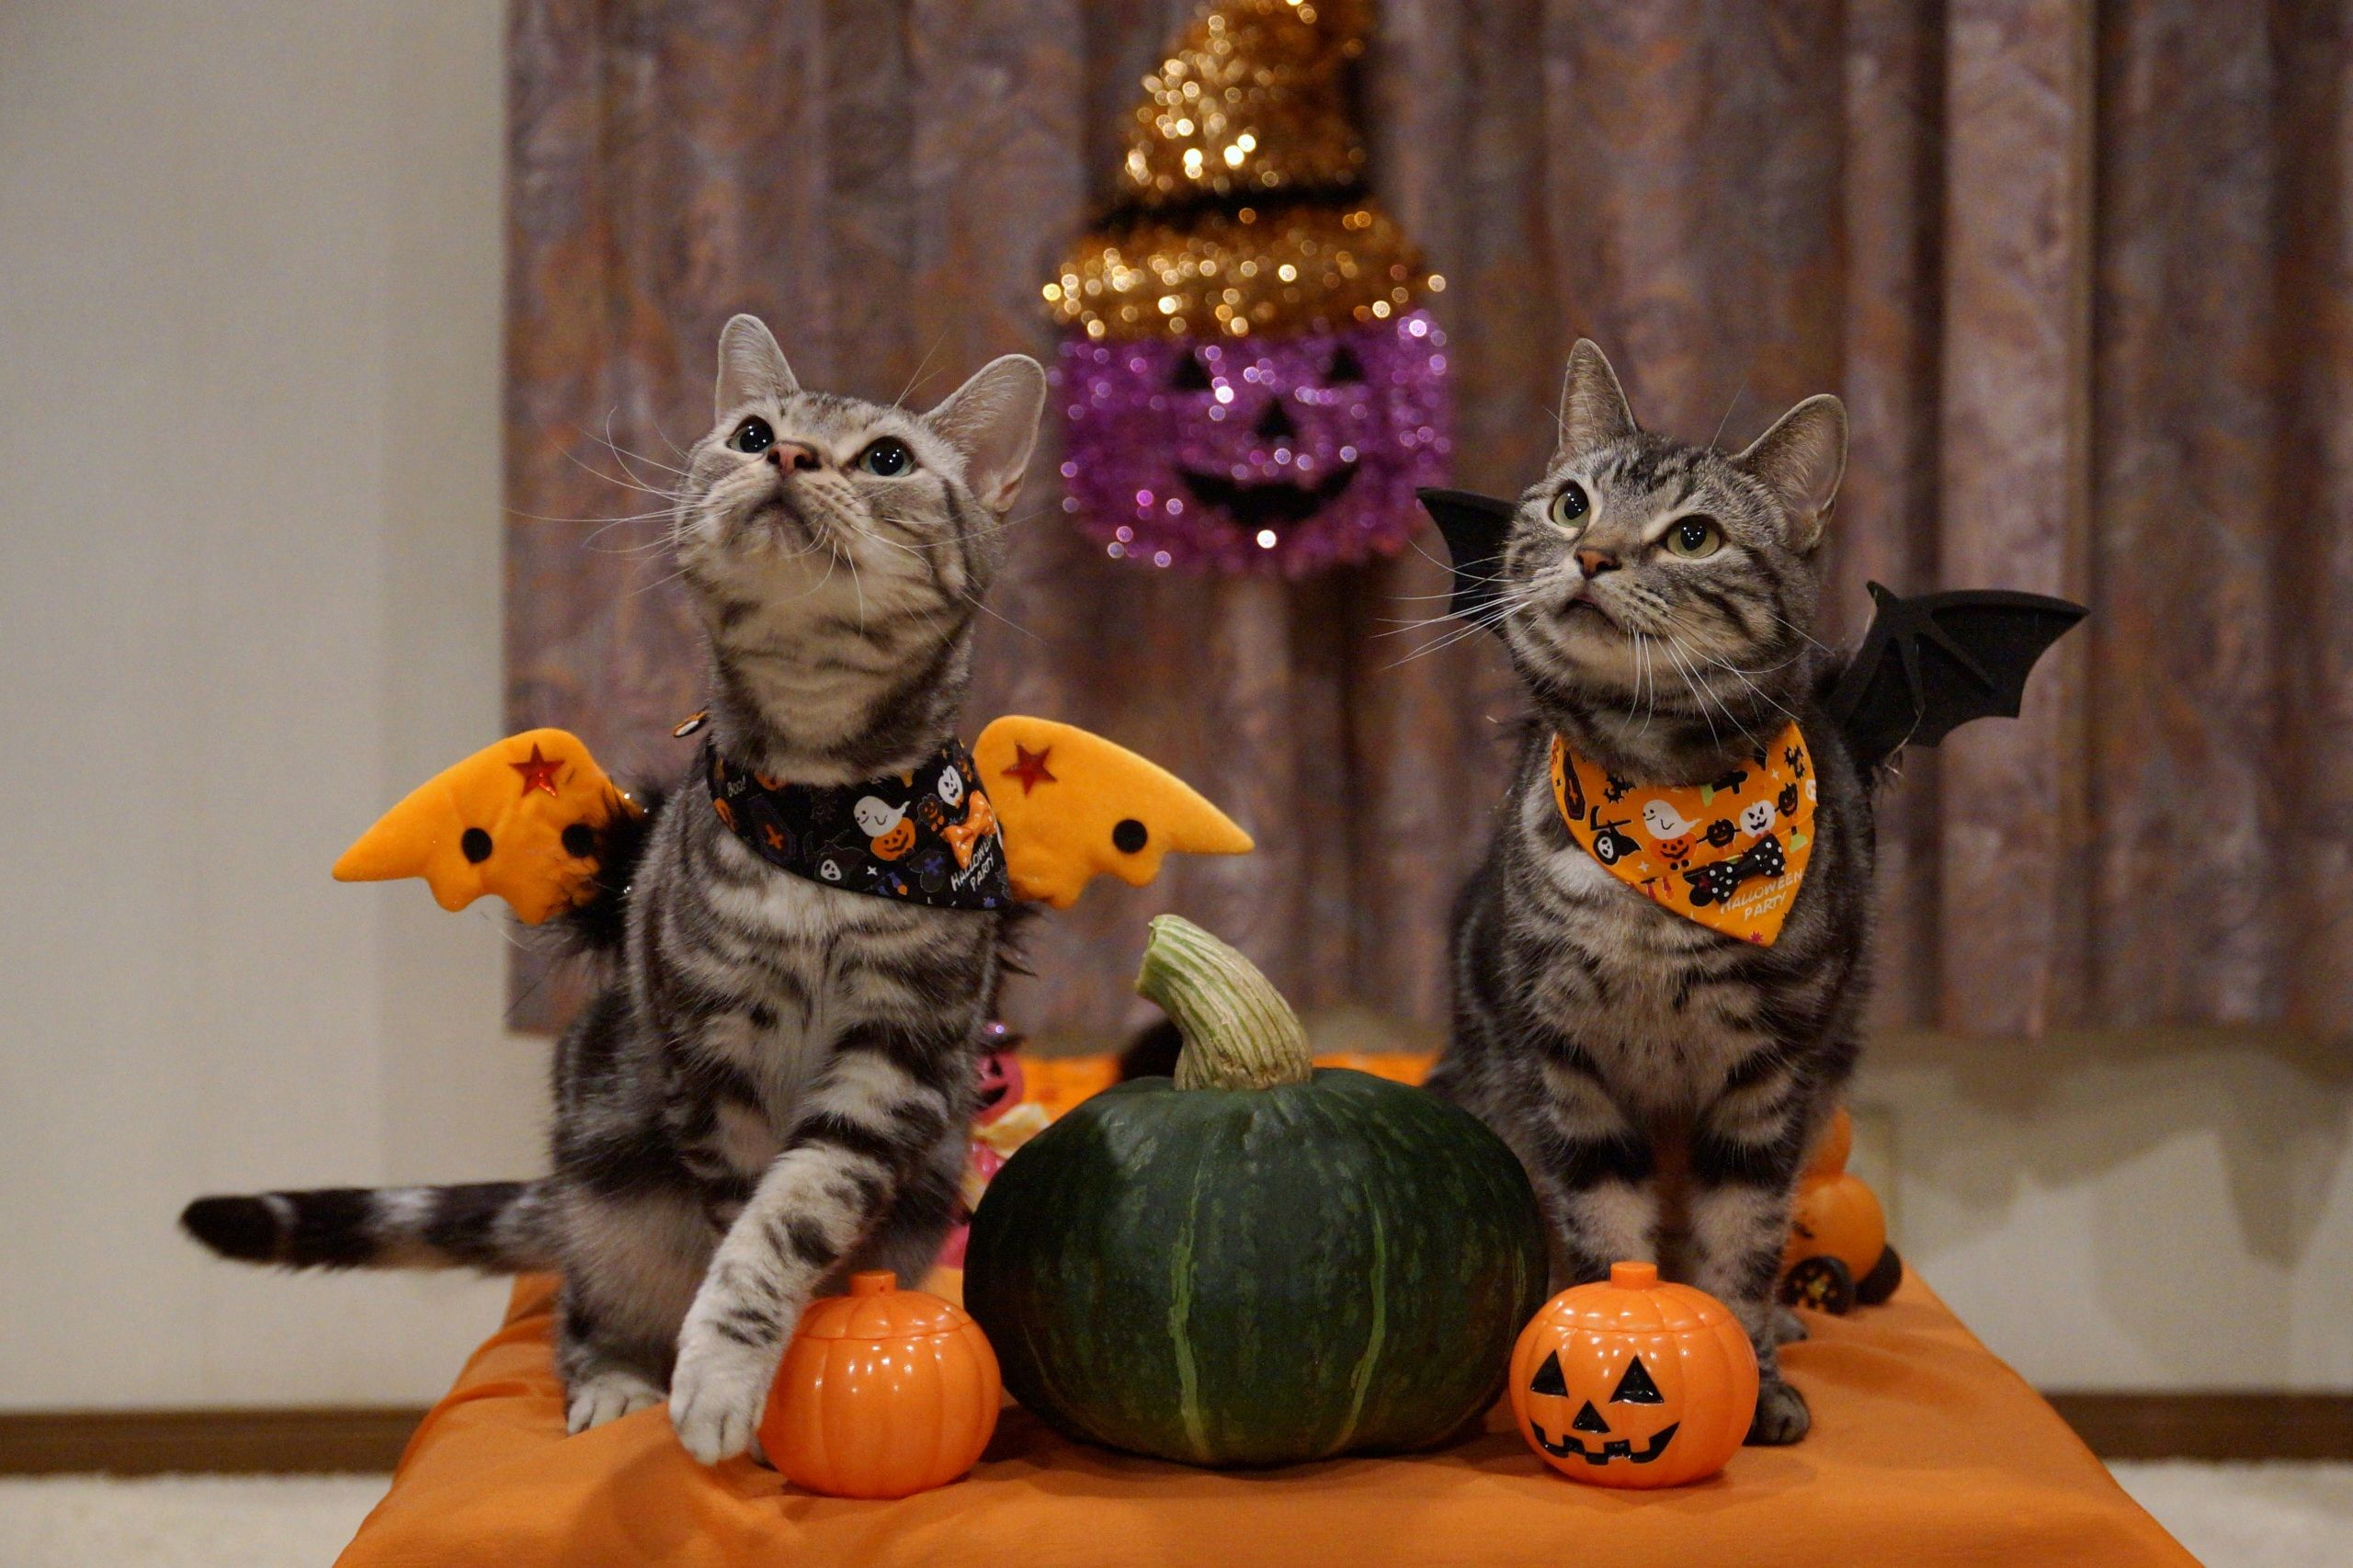 Pin By Isabelle Conley On Halloween Cat Cute Animal Drawings Halloween Cat Magic Cat